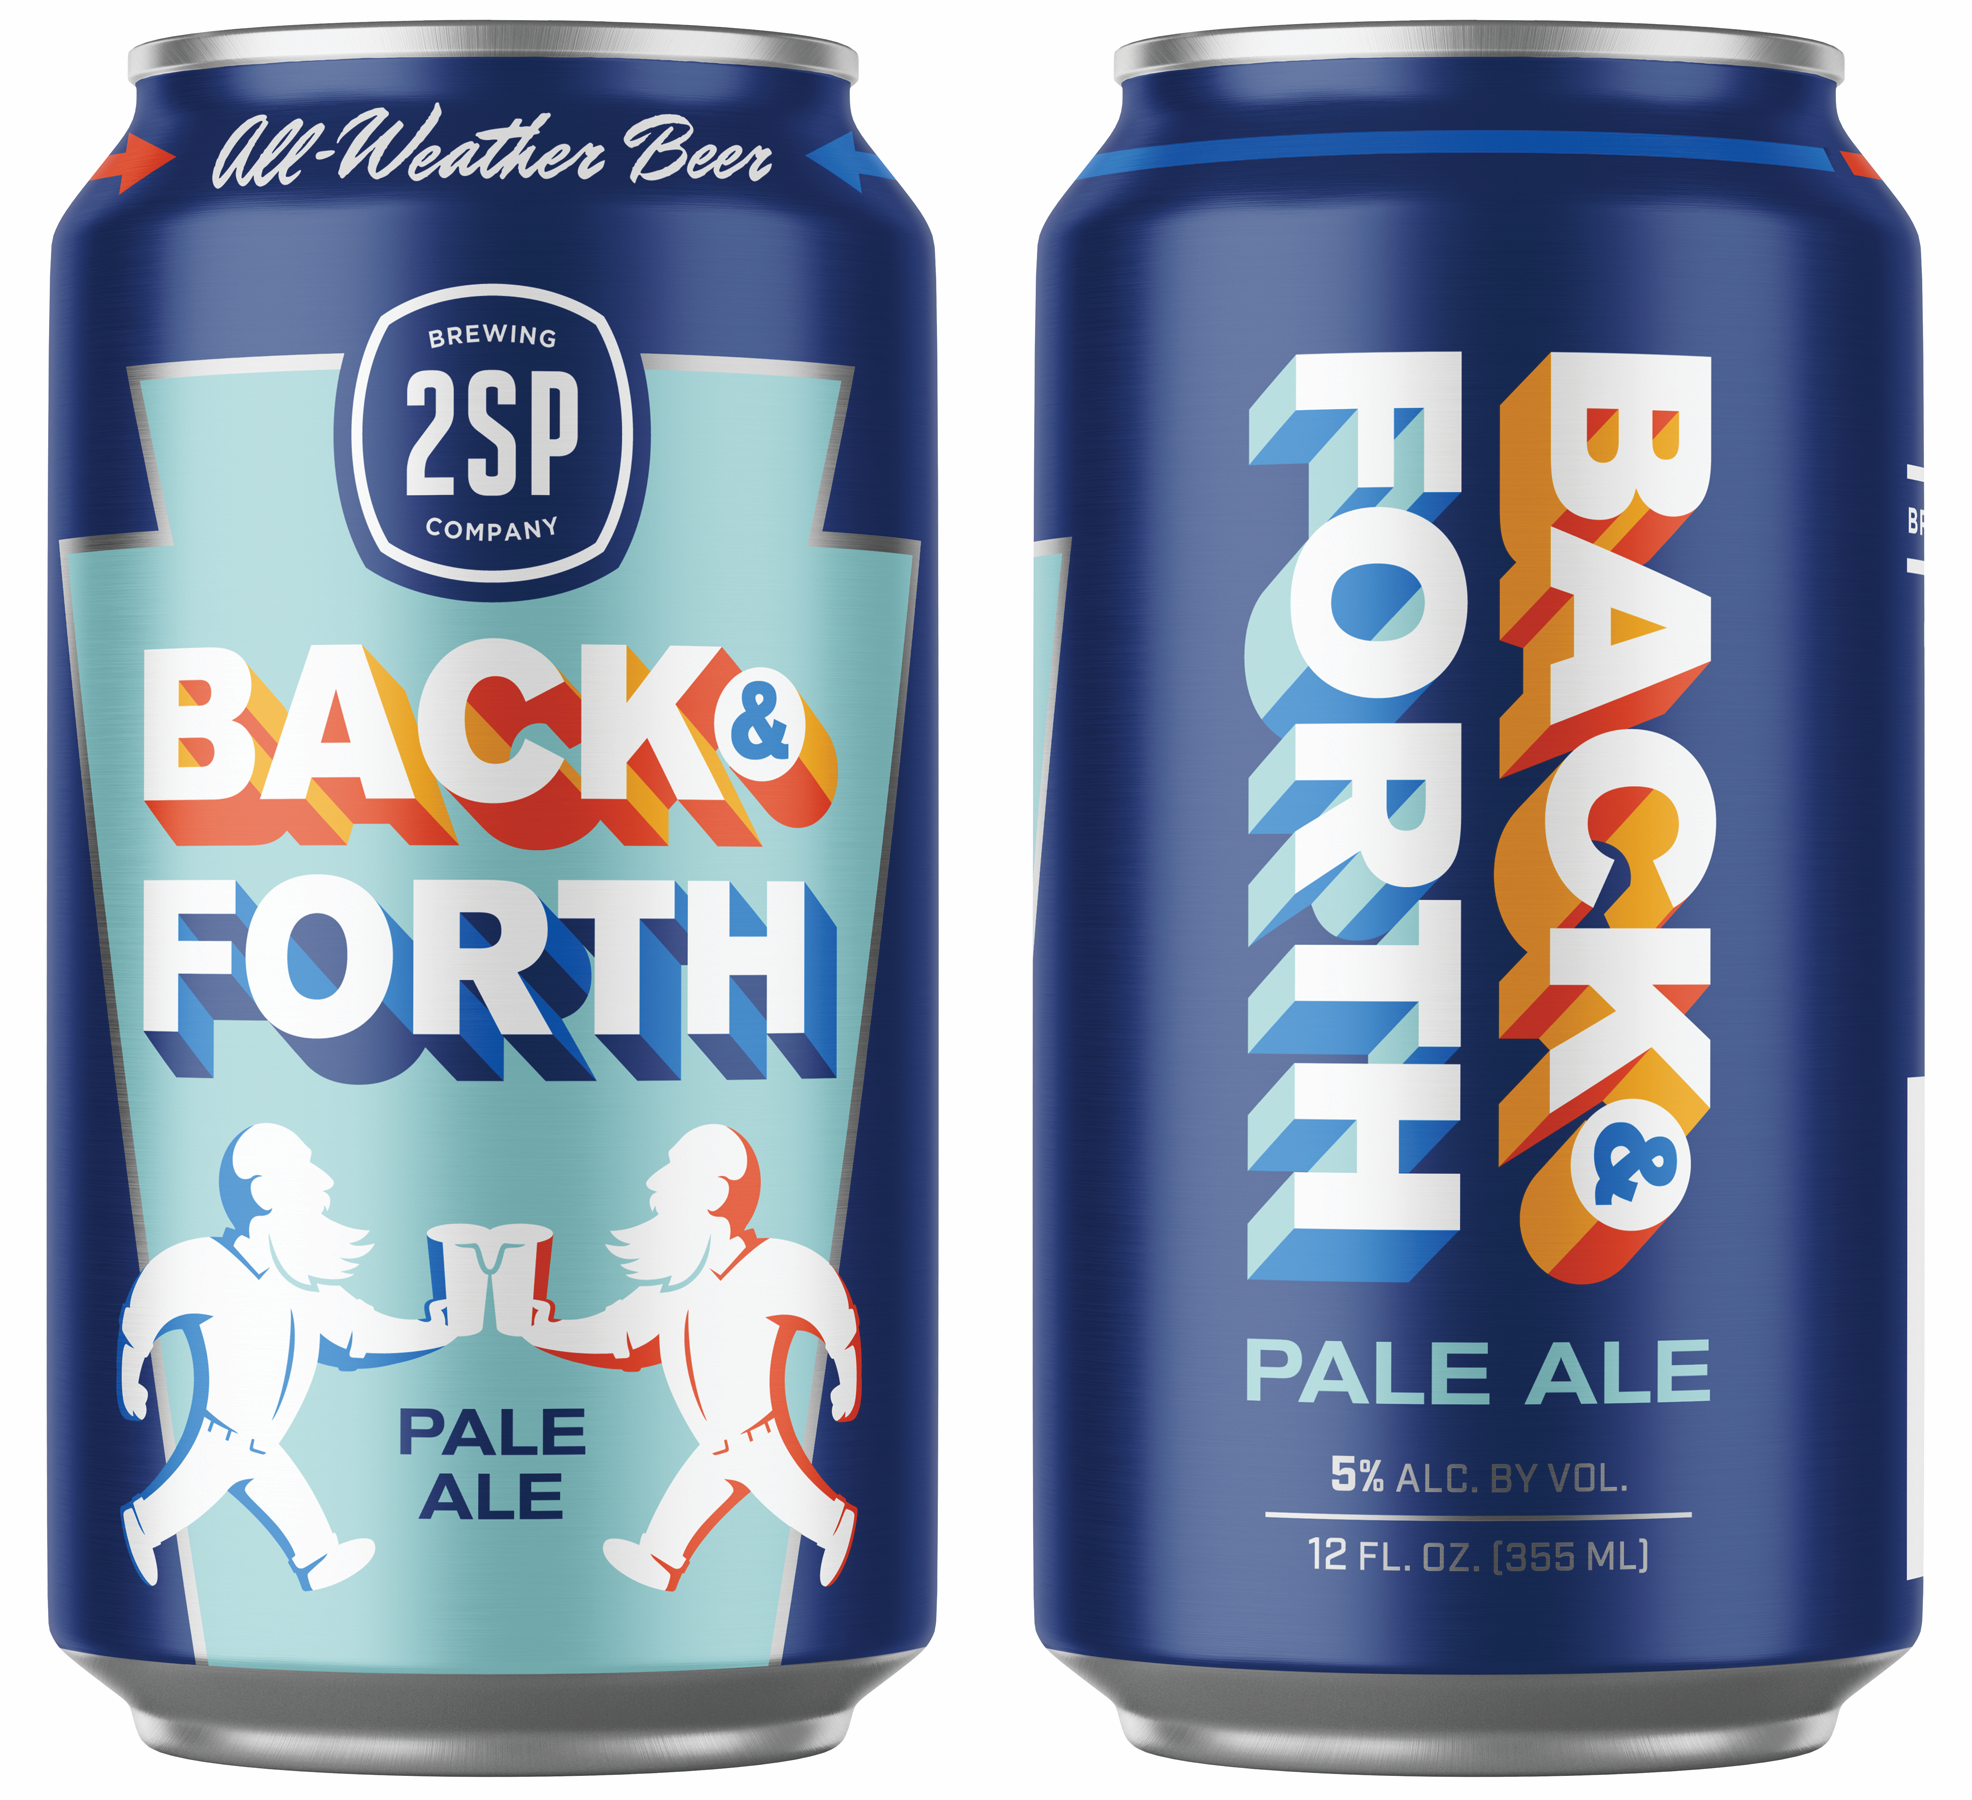 Back and Forth New 2SP Branding 2021